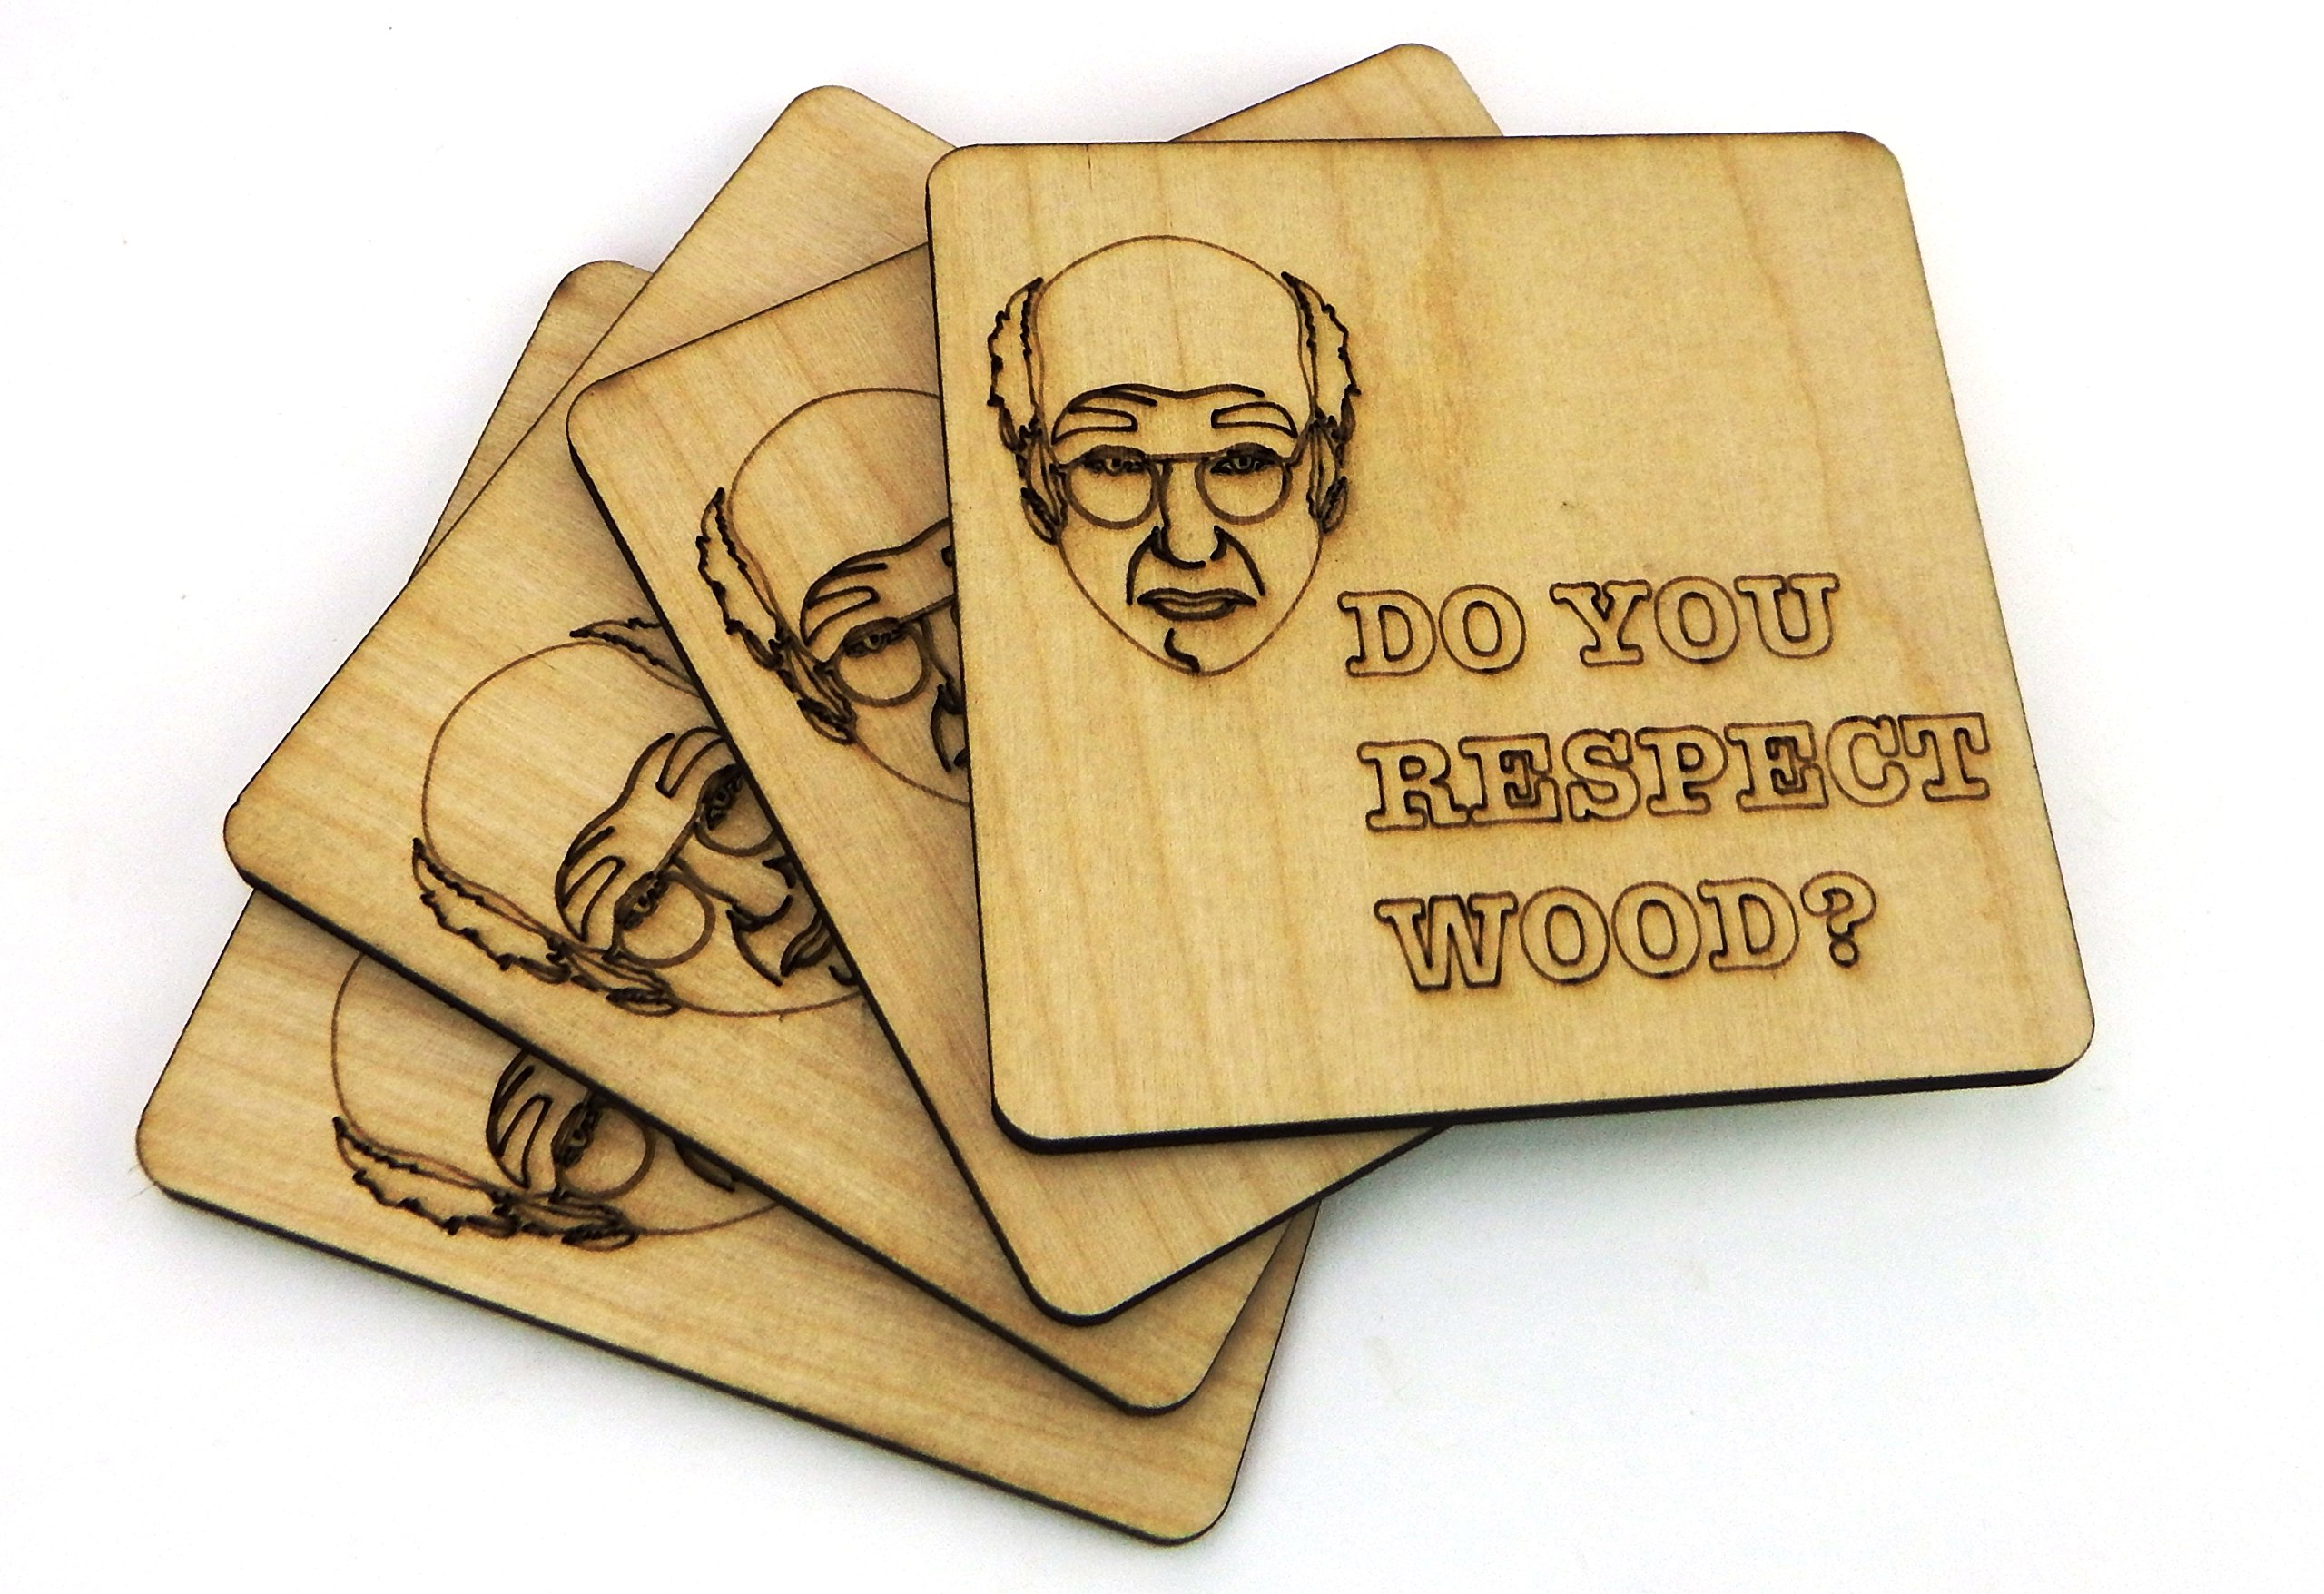 Set of 4 Wooden ''Do You Respect Wood?'' Larry David Coasters by Wooden Shoe Designs (Image #6)